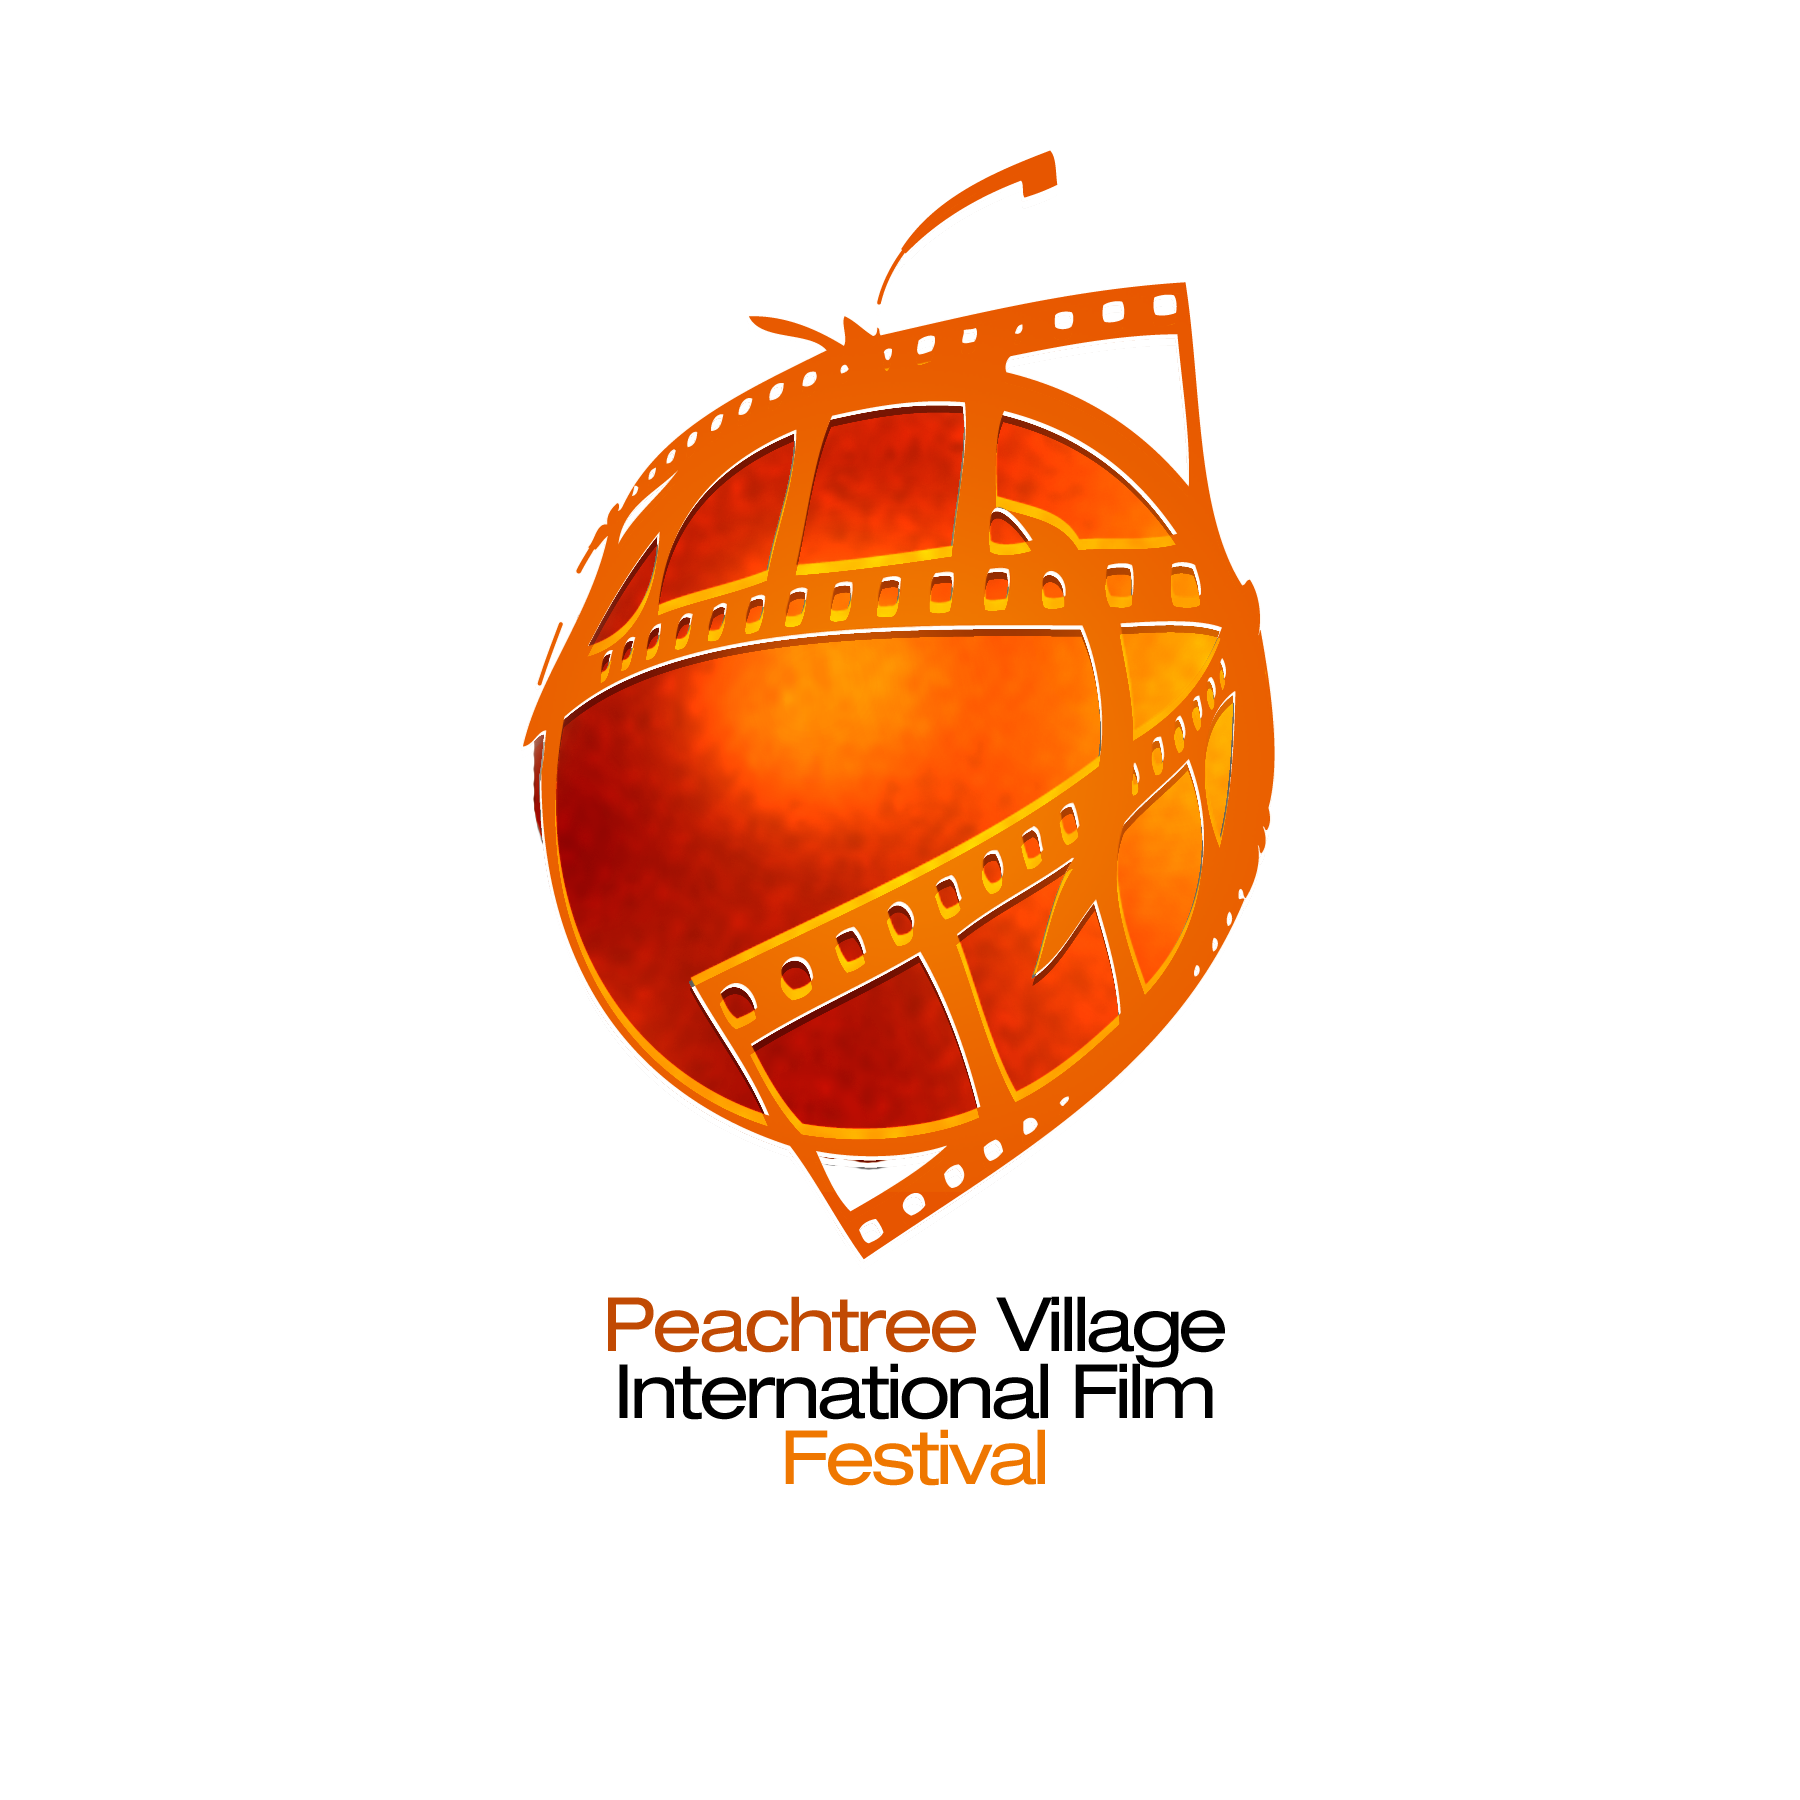 Peachtree Village Int. FF - Screening locally in Georgia on October 26th-29th, 2017, from 4:30 - 5:00 PM at the Terminus Building in Atlanta, located at 330 Marietta St NW, Atlanta, GA 30313.